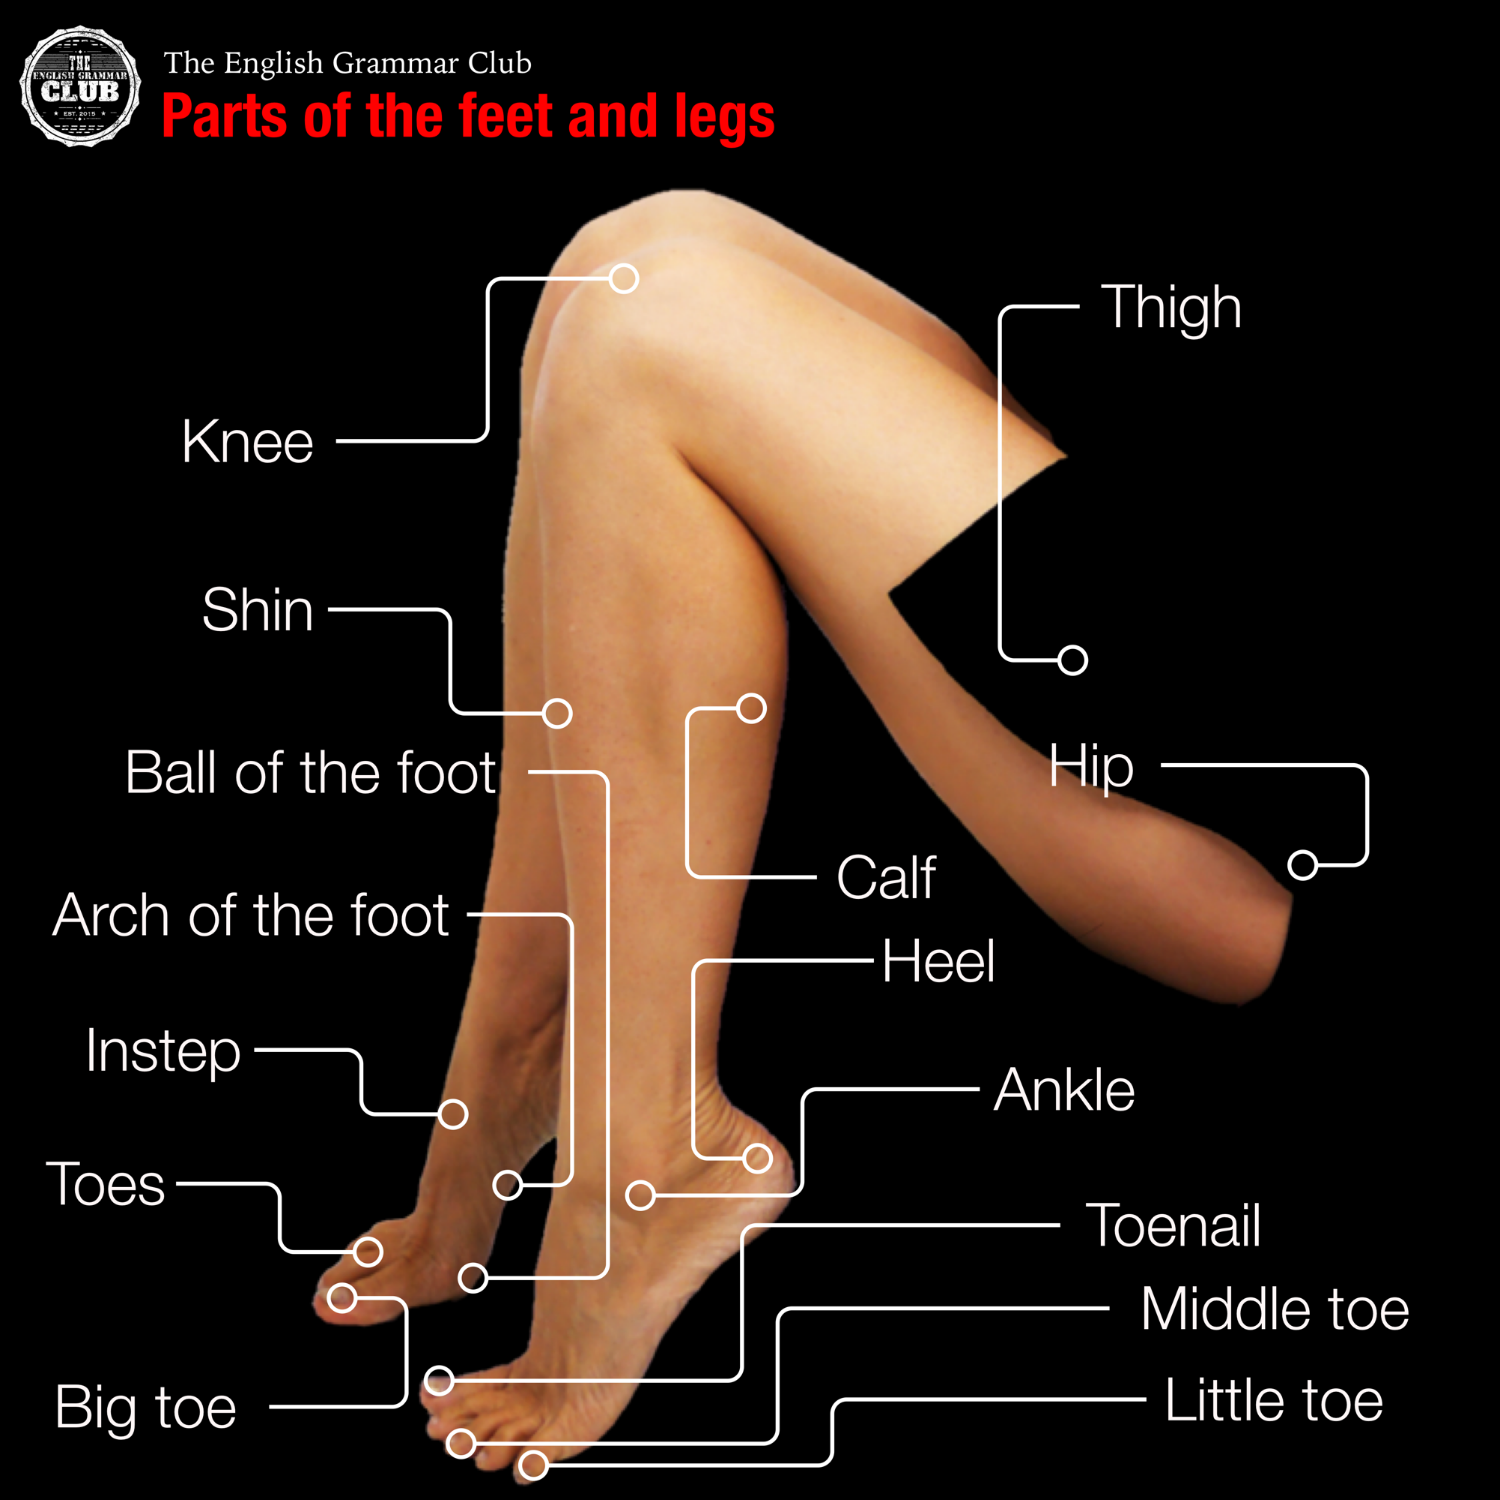 Parts of the feet and legs in English